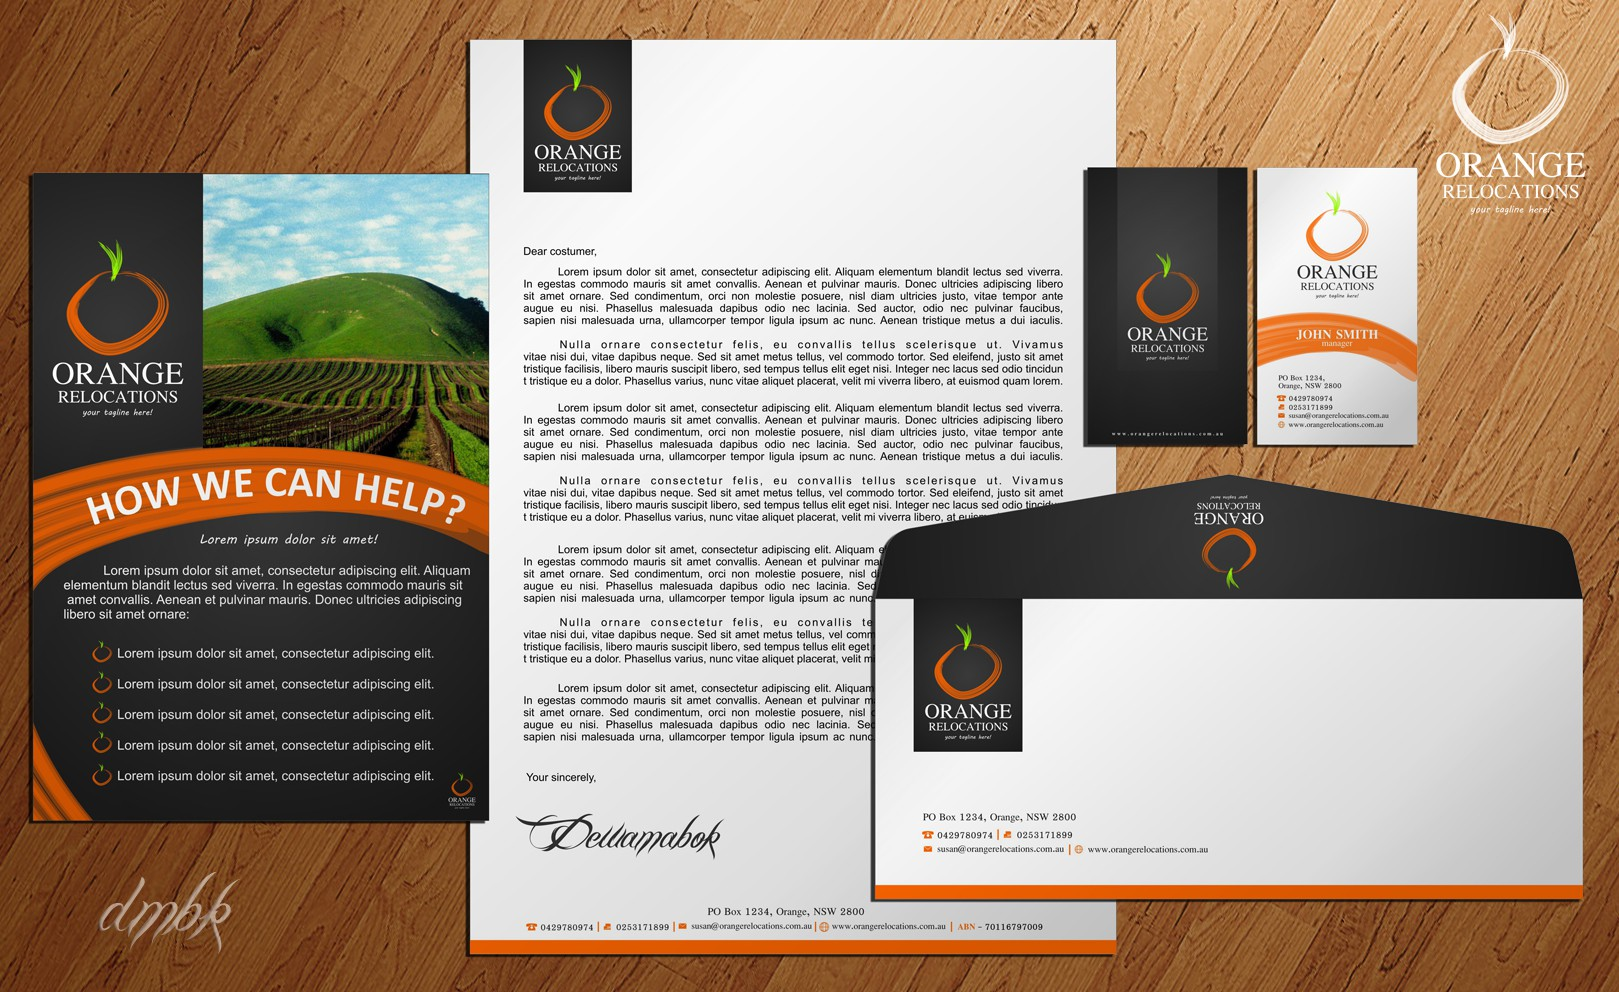 Help Orange Relocations with its first identity